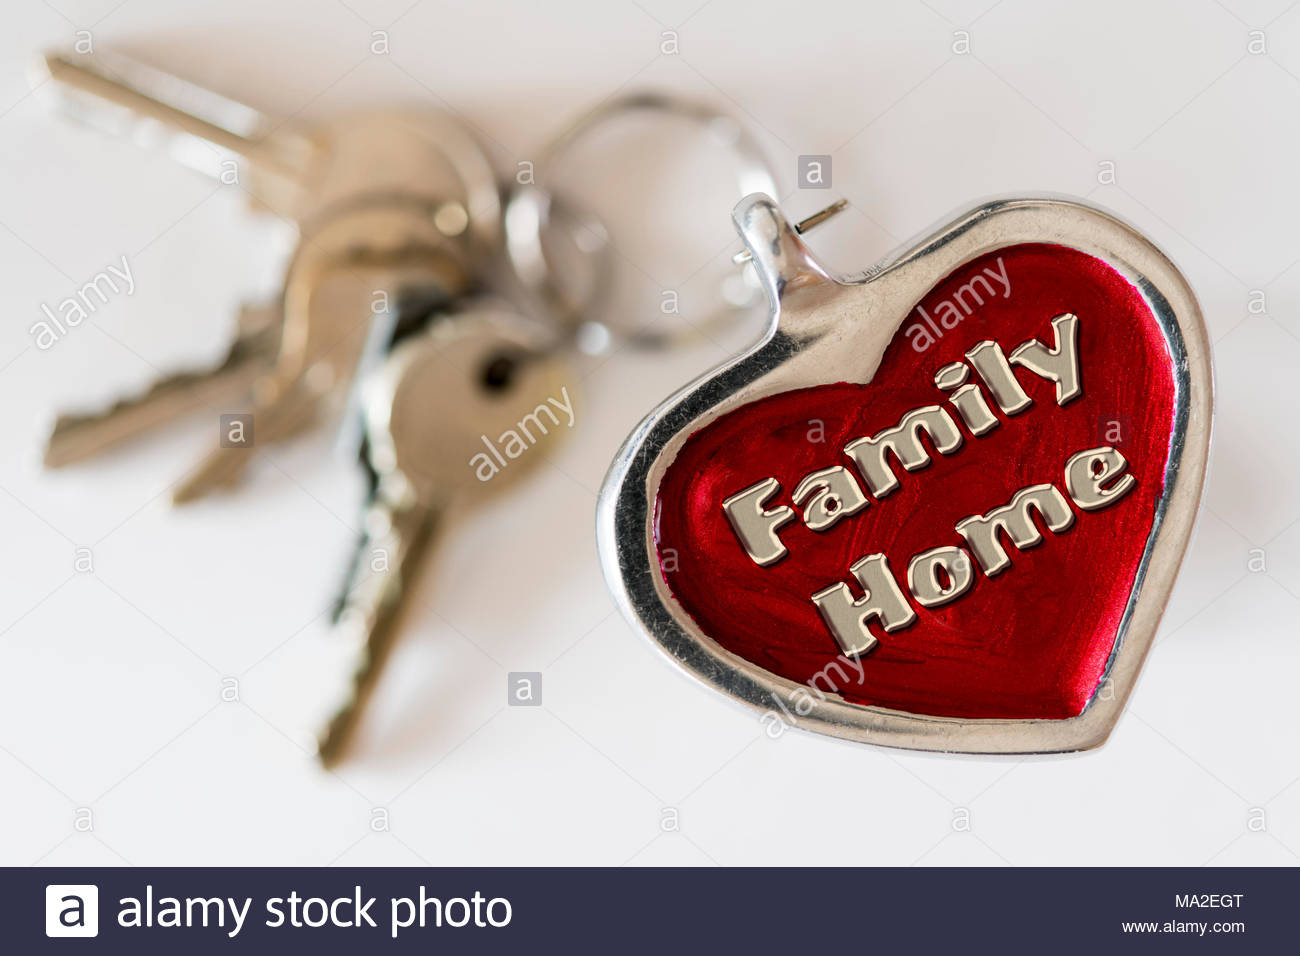 Family home written on a key ring fob, UK - Stock Image